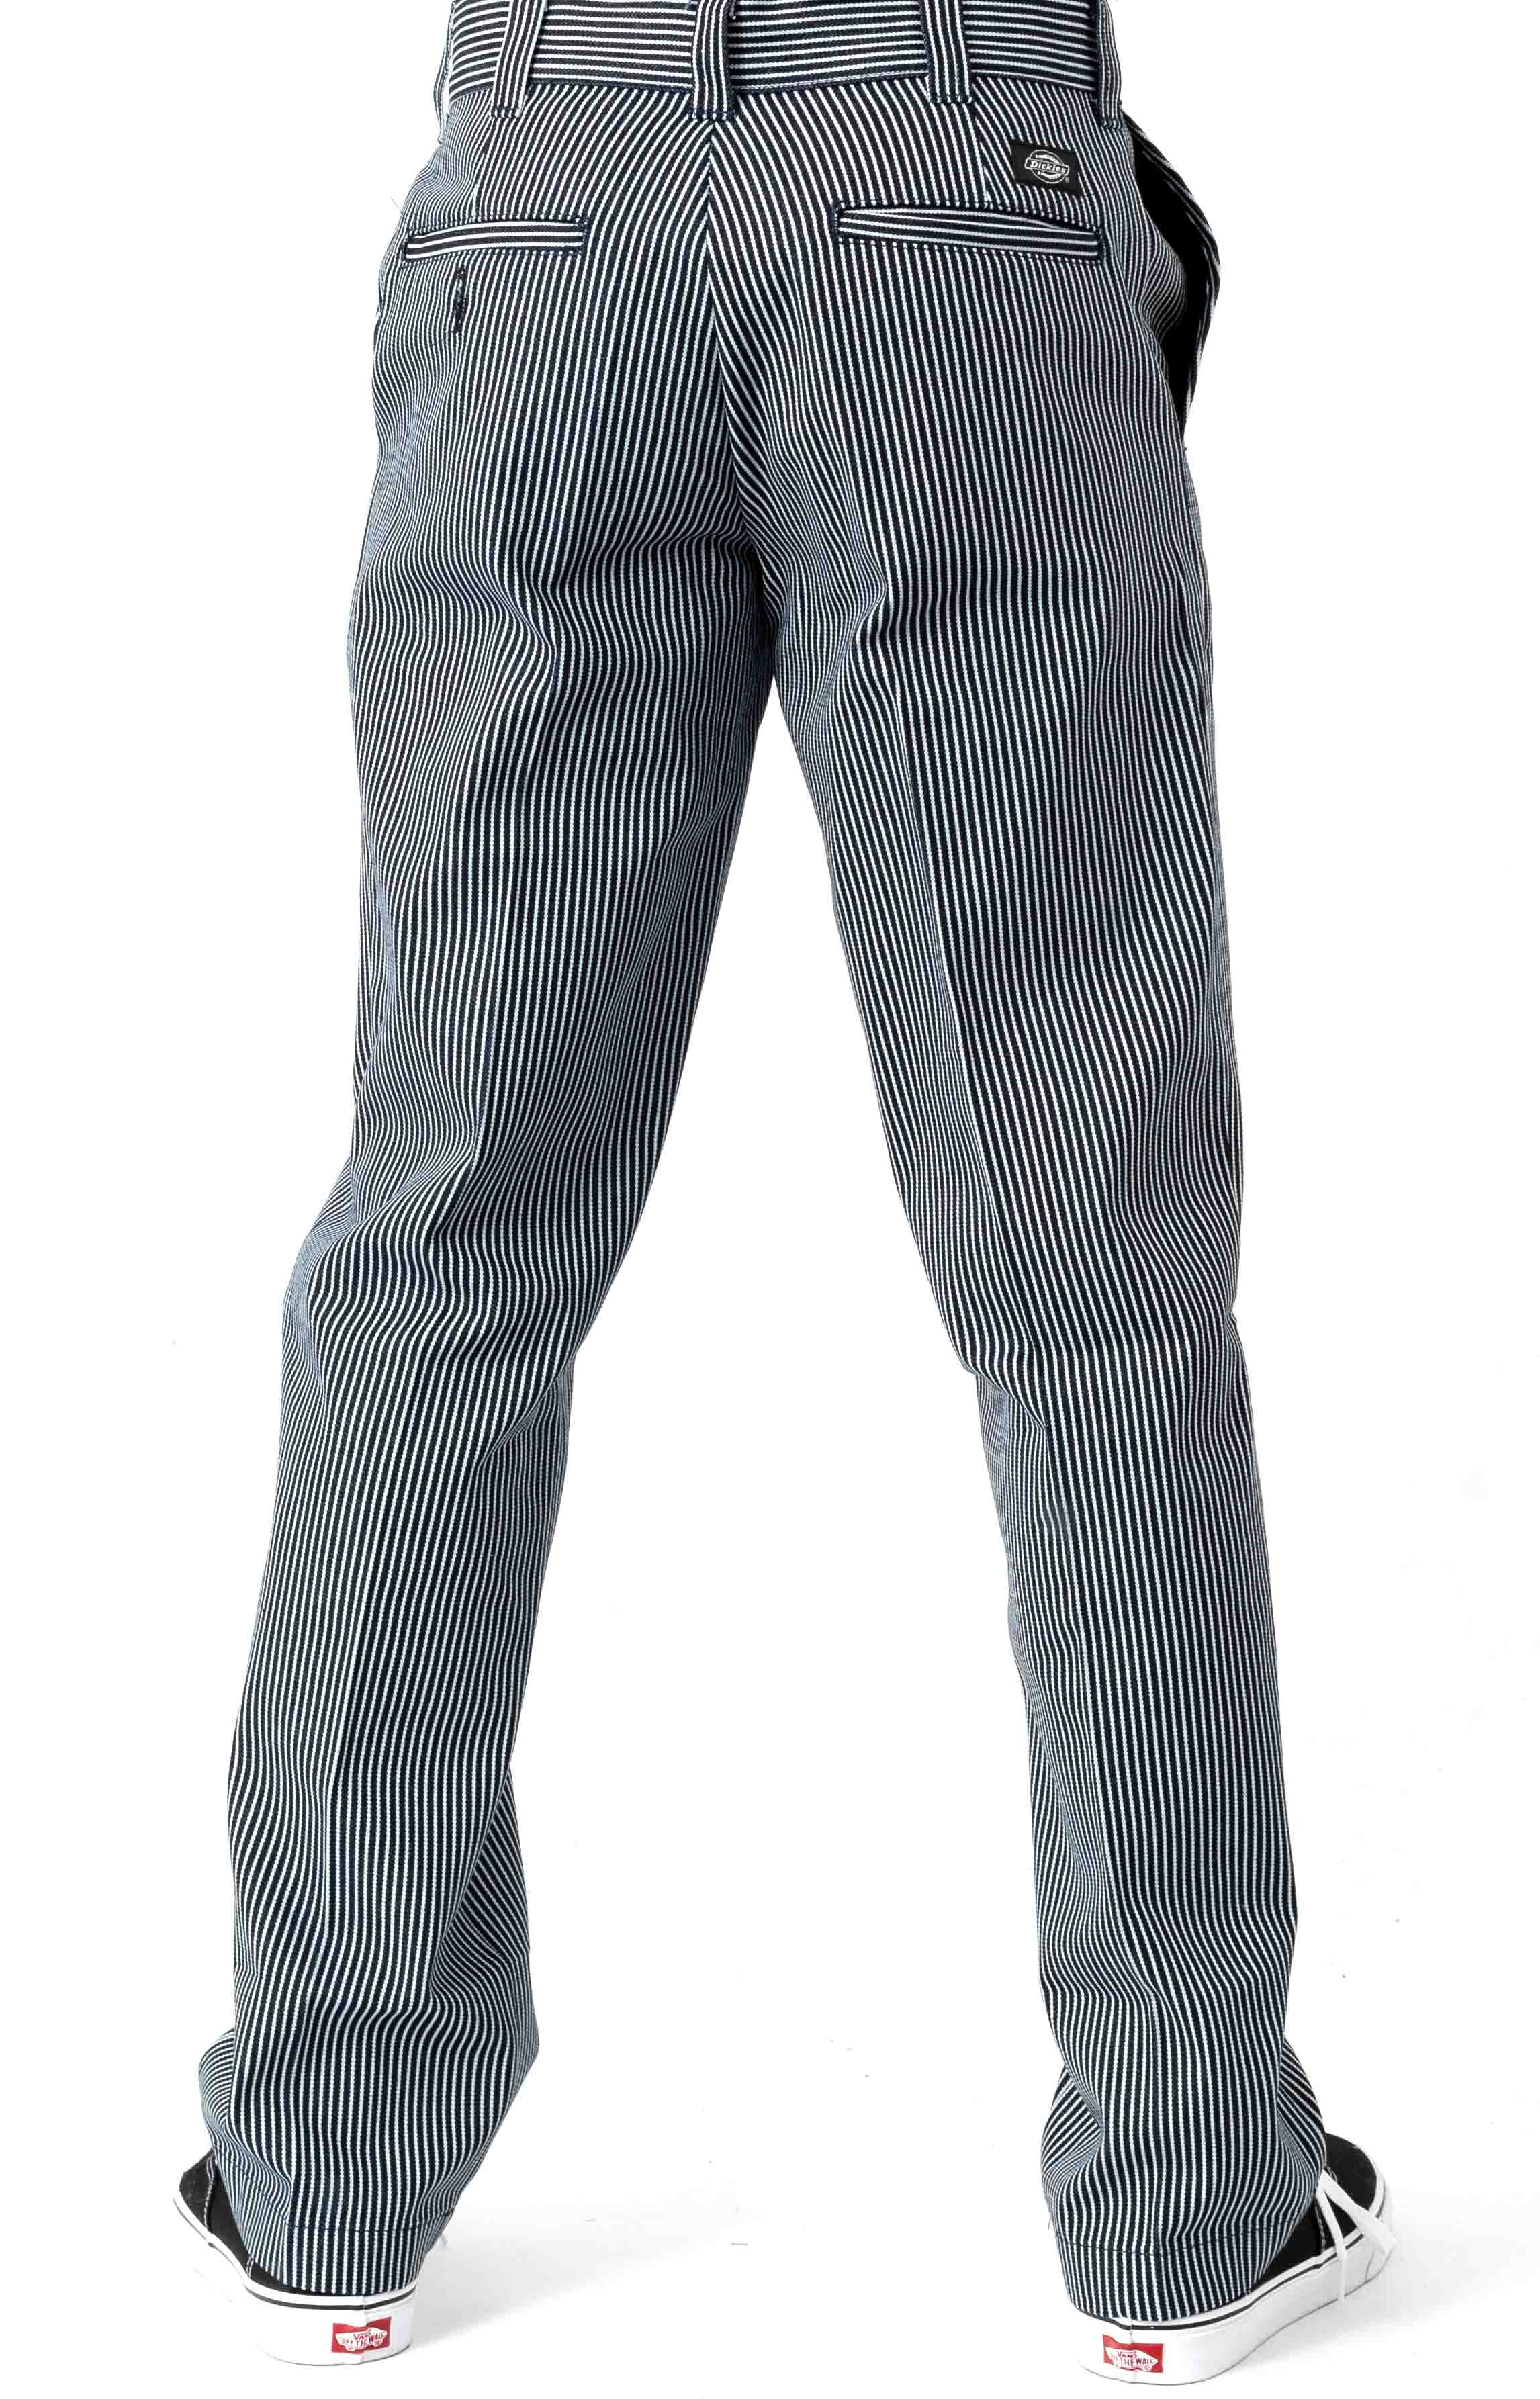 (WP894HHS) '67 Slim Fit Twill Hickory Stripe Pant - Blue White Hickory Stripe  3